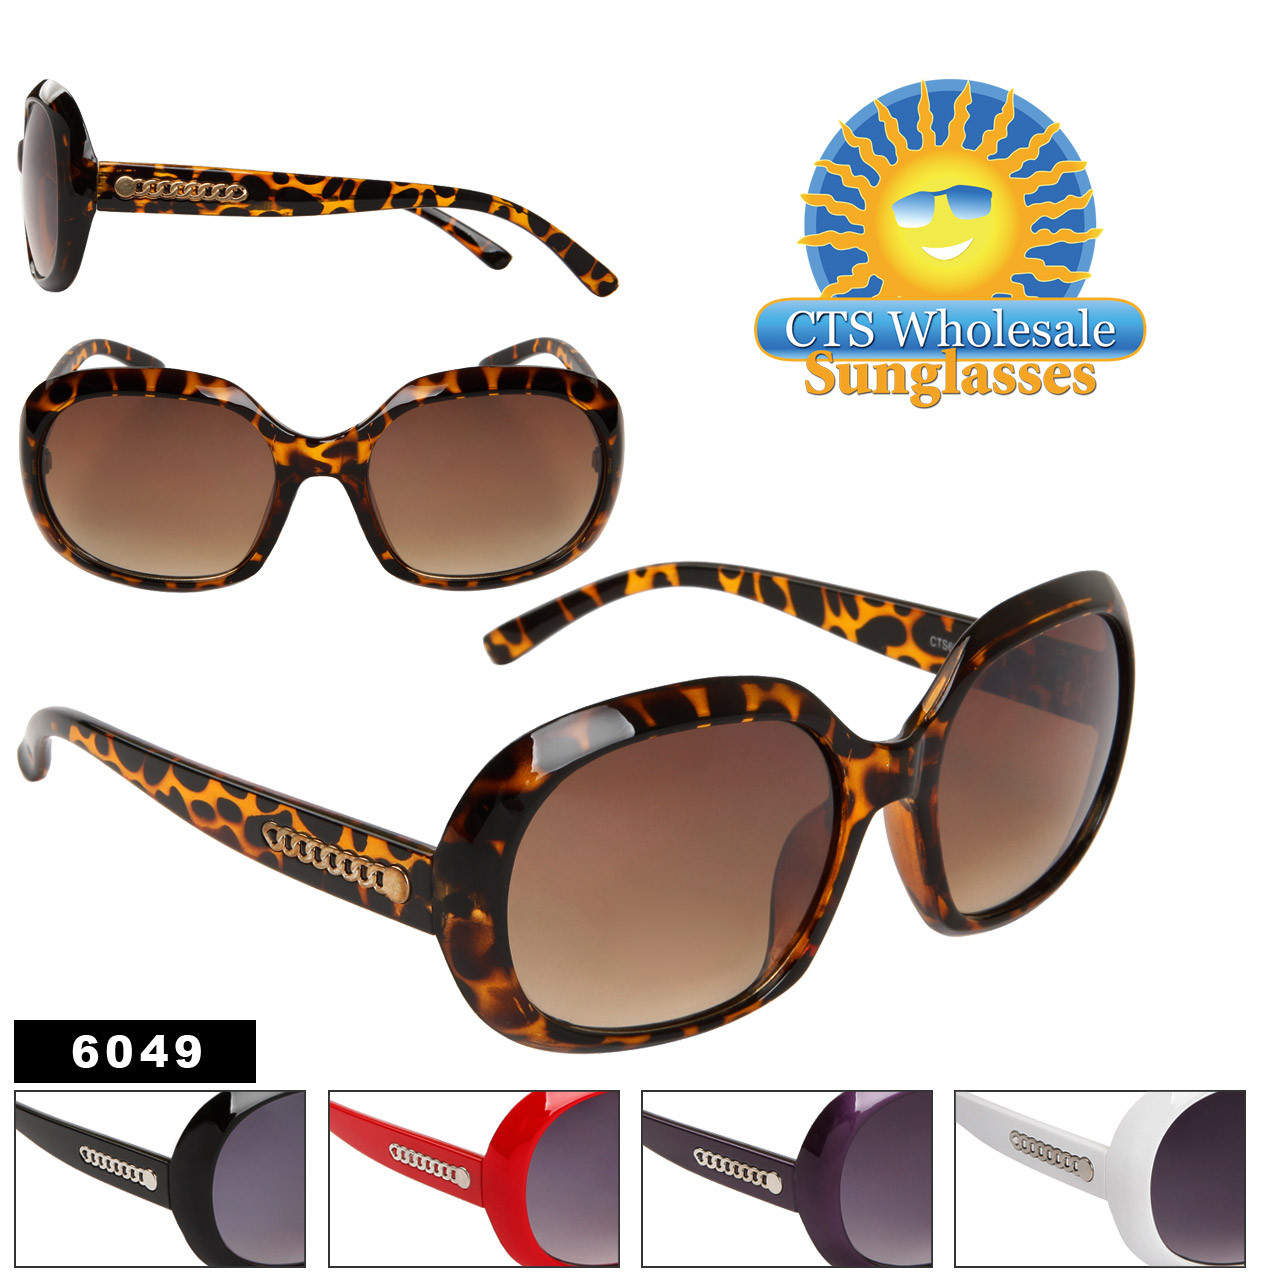 Fashion Sunglasses 6049 Wholesale Sunglasses (Assorted Colors) (12 pcs.)